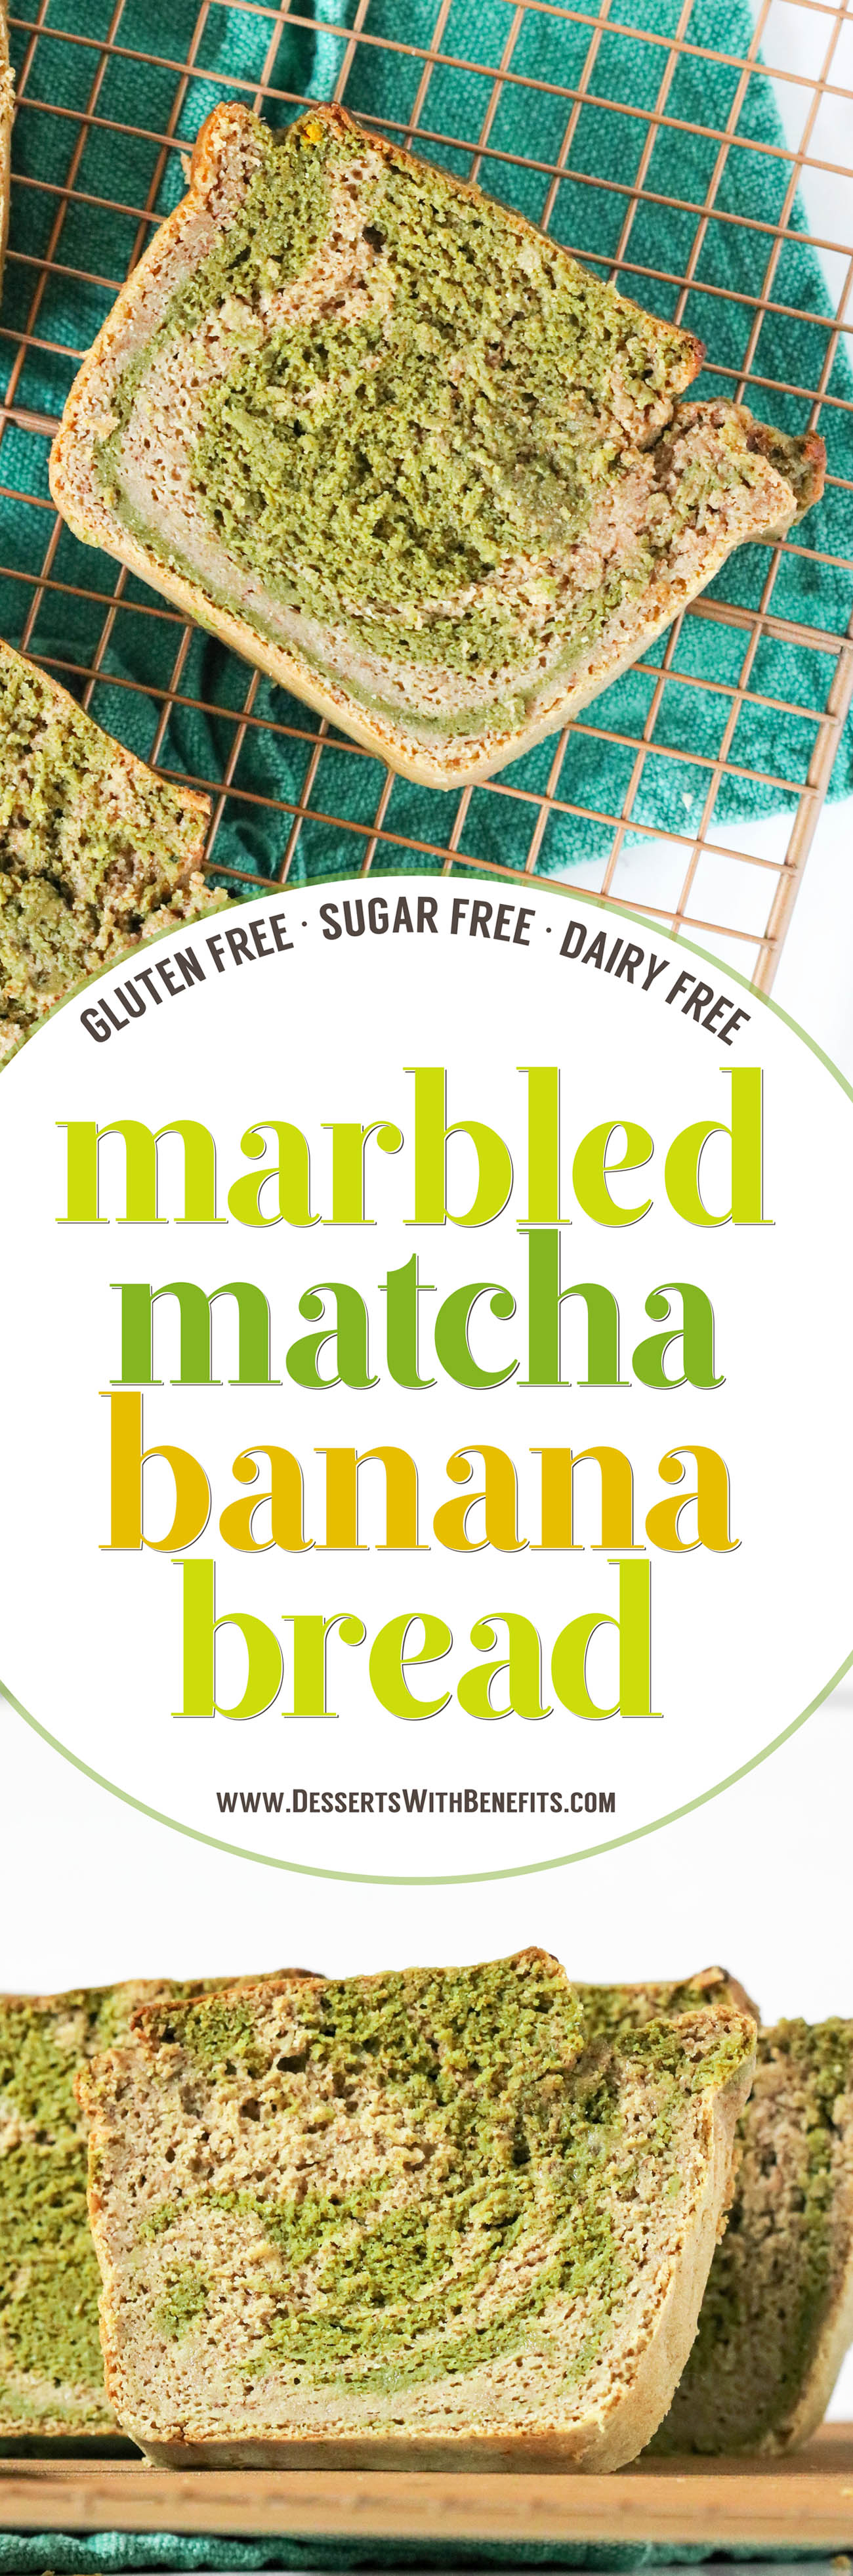 This Marbled Matcha Green Tea Banana Bread is so moist, fluffy, springy, and flavorful, you'd never know it's gluten free, dairy free, sugar free, and high protein!